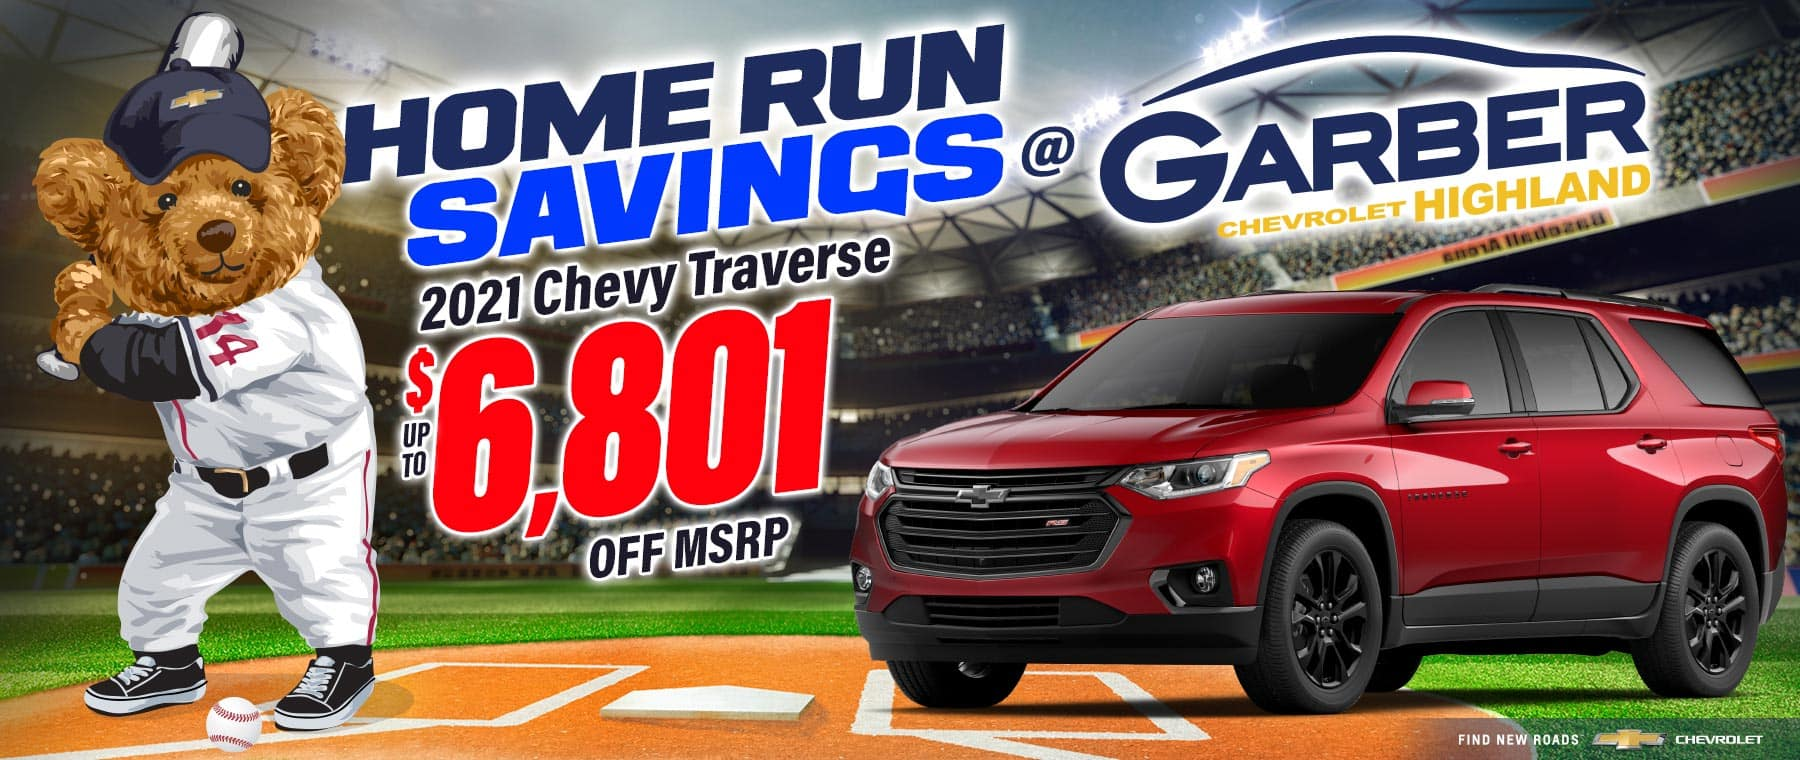 2021 Chevy Traverse - SAVE up to $6801